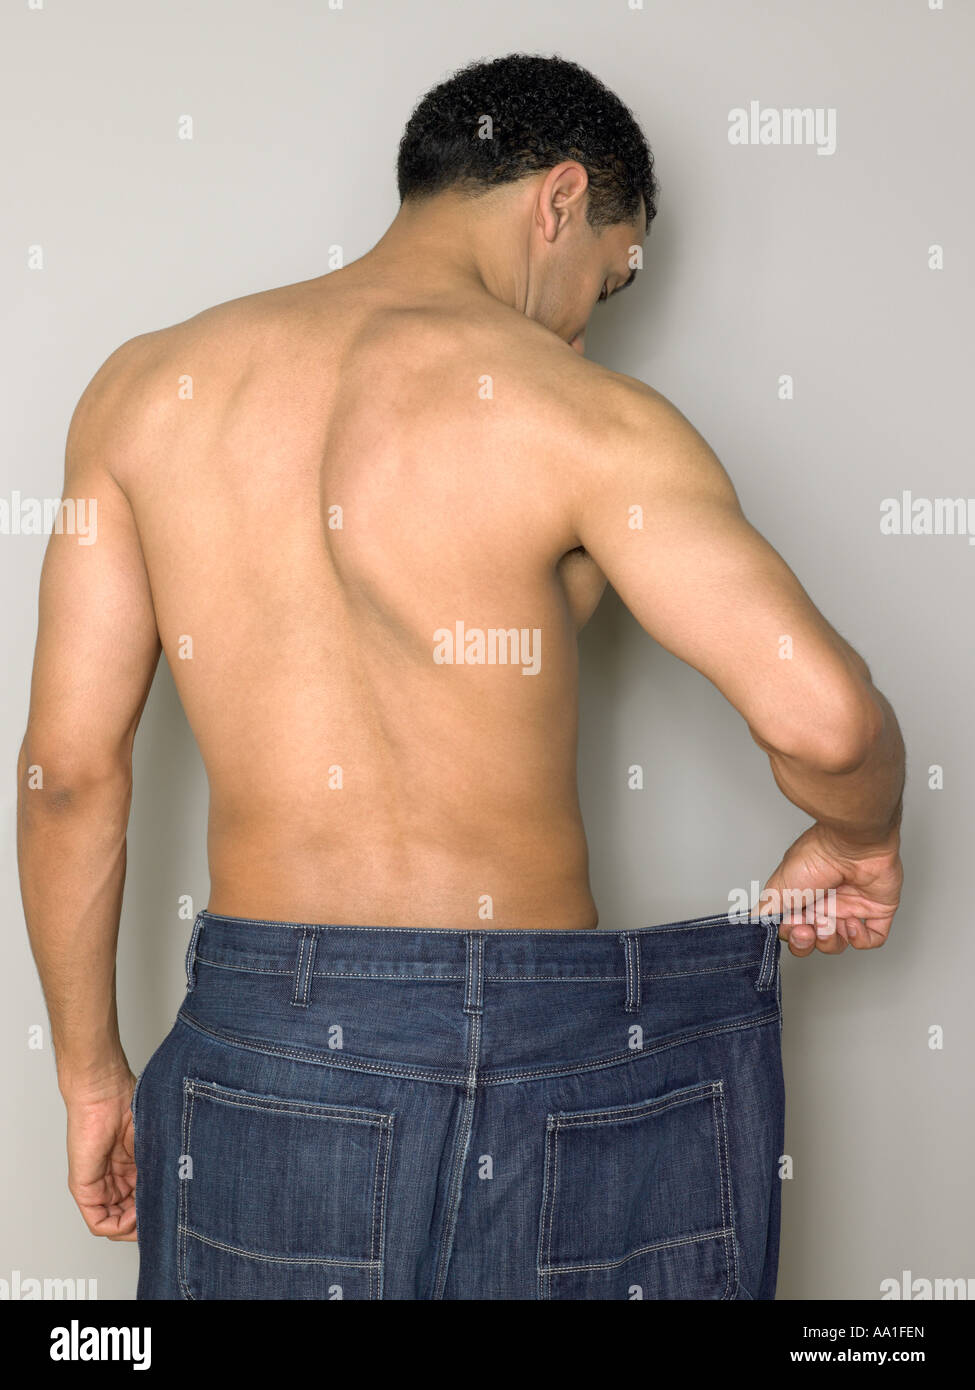 Man with loose jeans - Stock Image